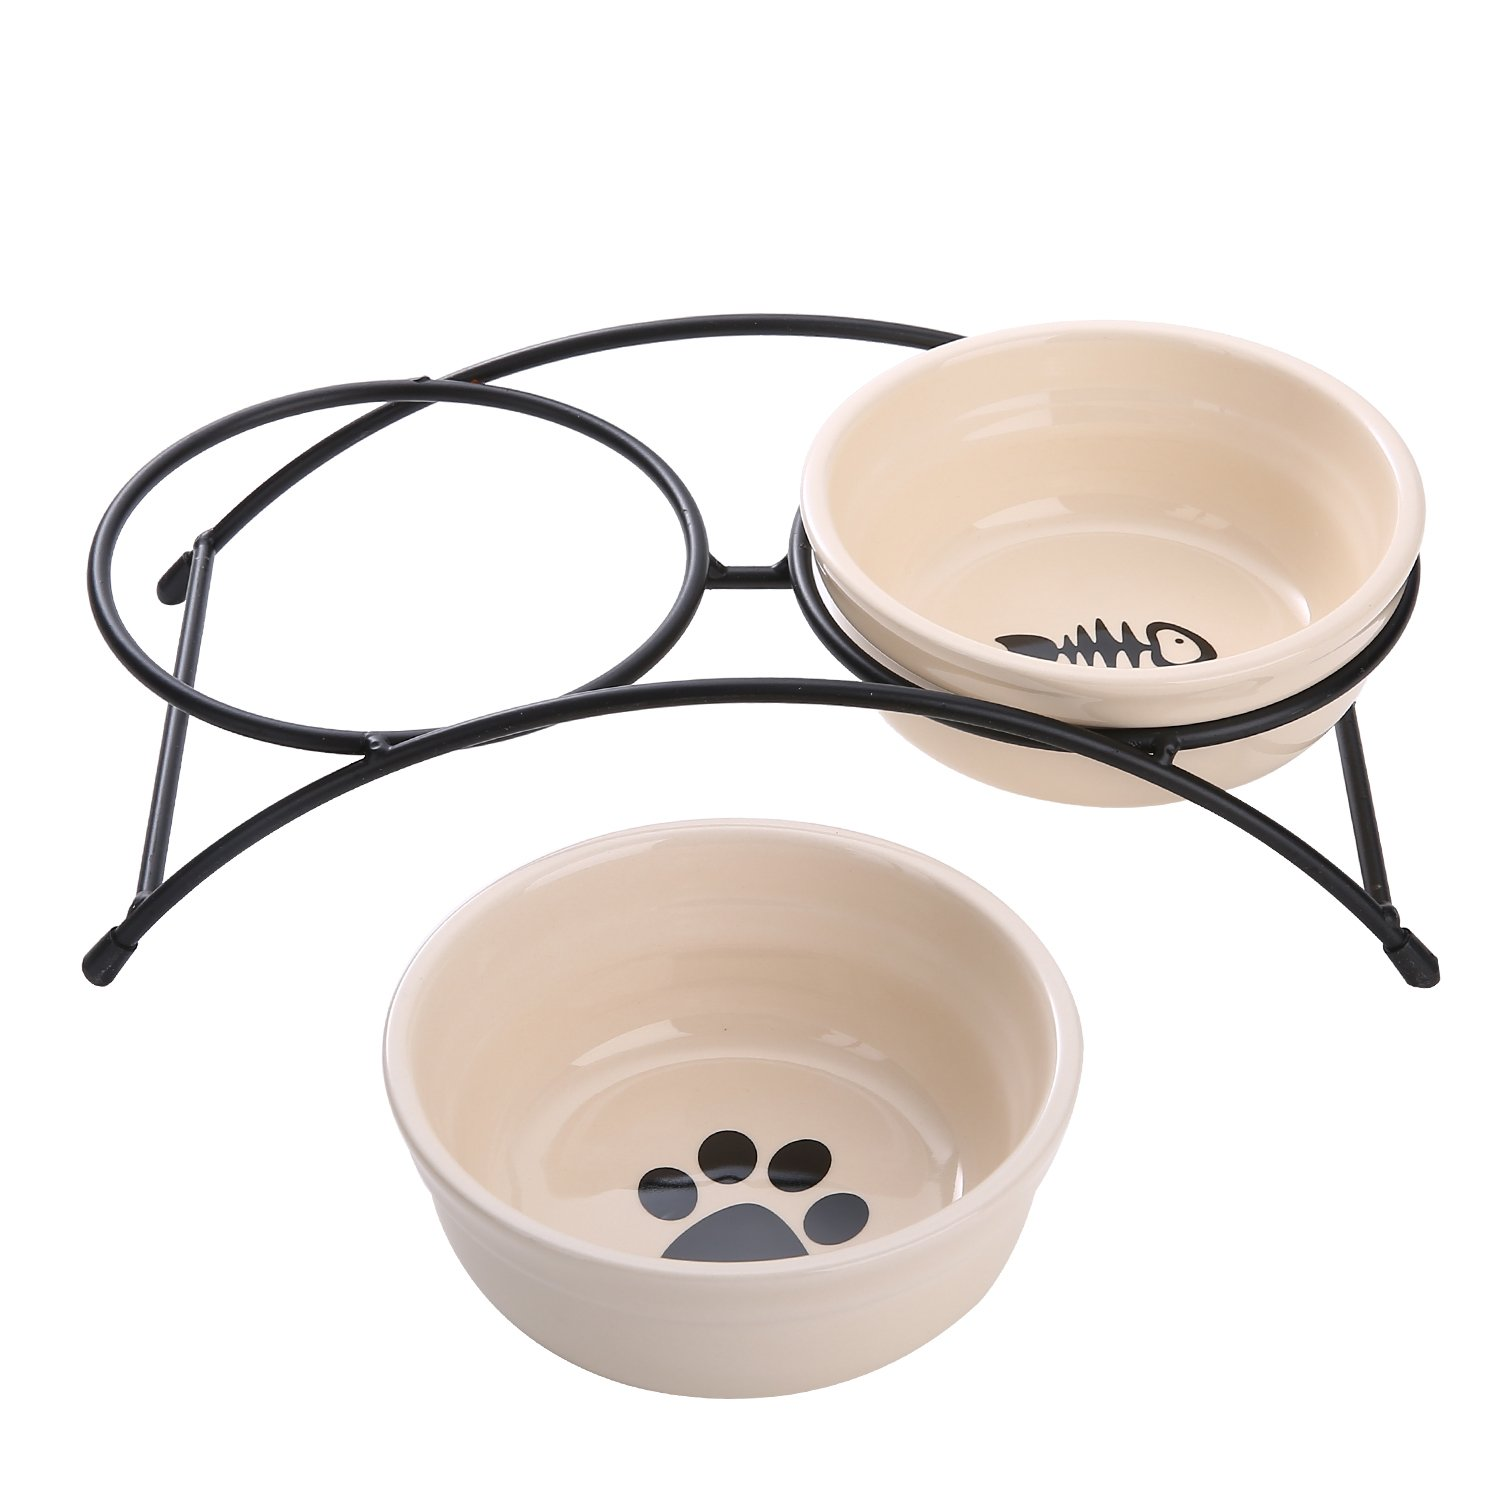 Pet Bowl Ceramic Stand -FUBARBAR Personalized Cute Elevated Raised Pet Food Water Feeding Serving Safe Double Bowls Tray Feeder with Metal Raised Antiskid Stand for Dogs and Cats Outdoor by FUBARBAR FUNNY PLACE TO STAY